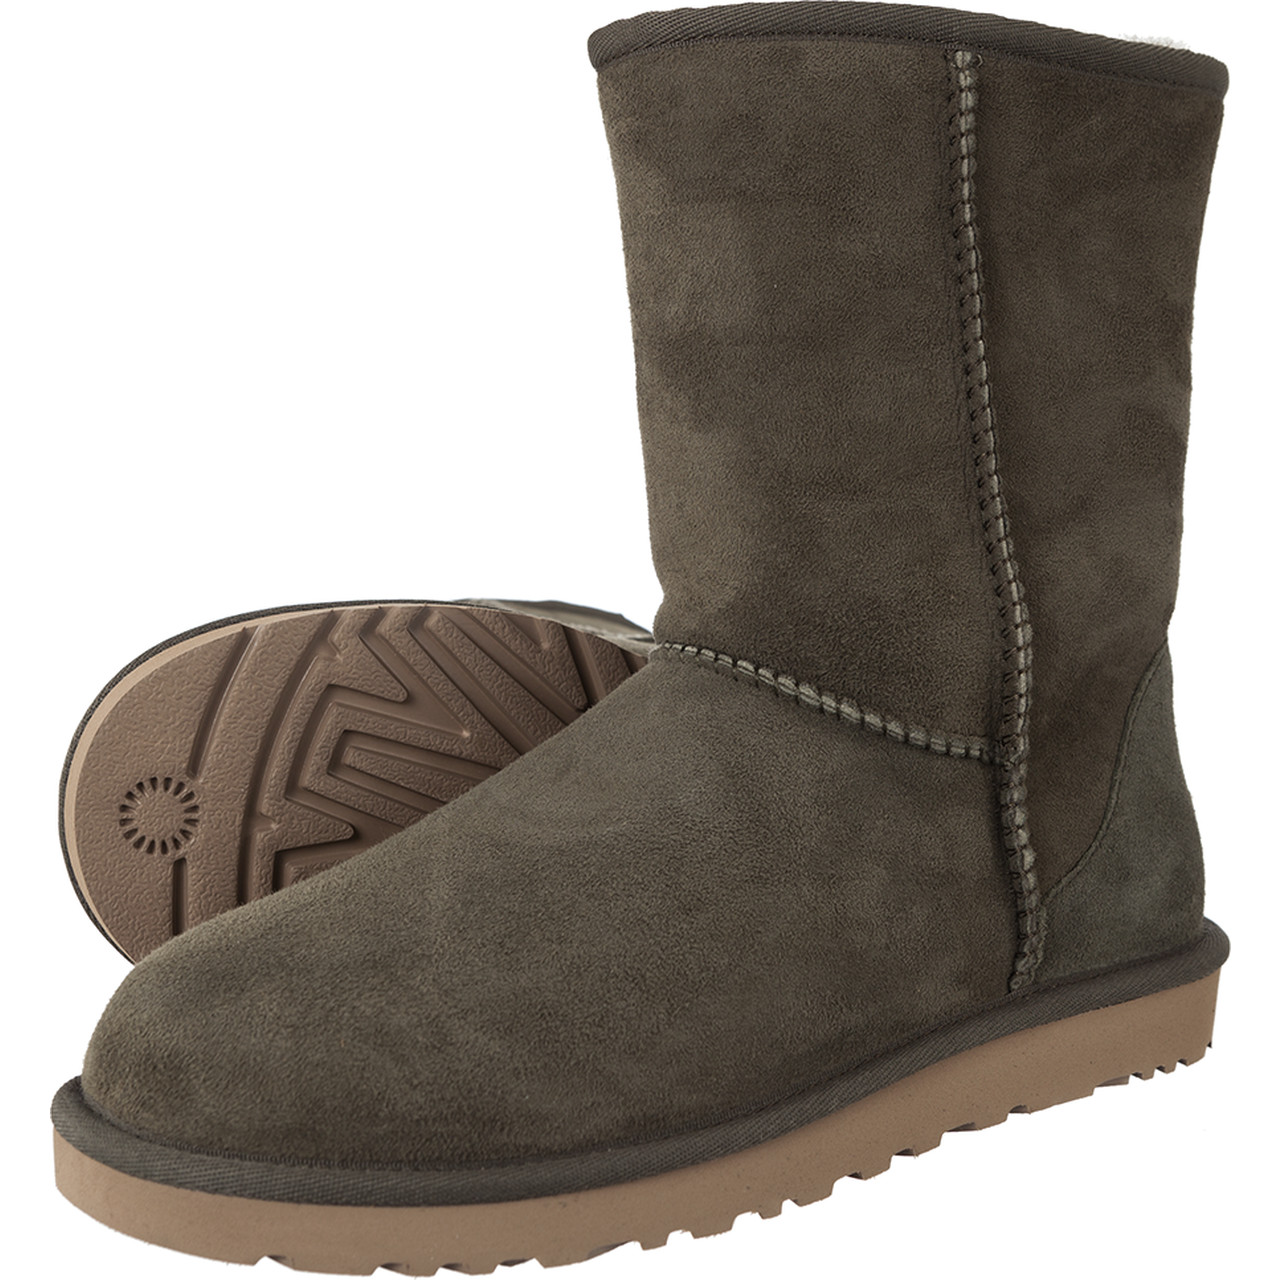 a97c0a224b3 Baby Ugg Boots Liverpool - cheap watches mgc-gas.com